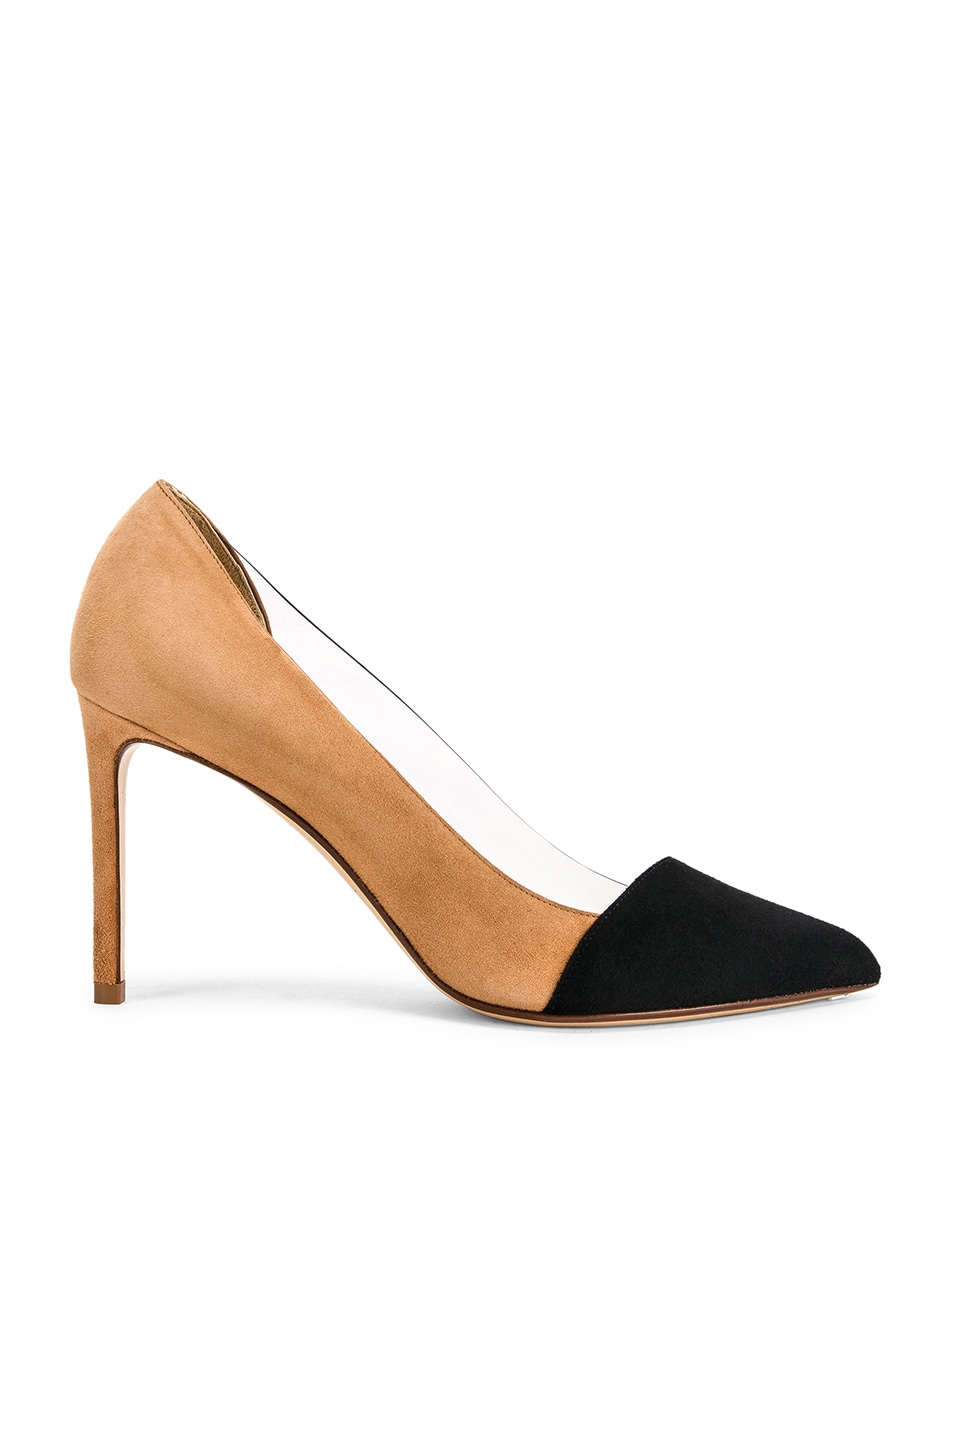 Image 1 of FRANCESCO RUSSO Two Tone PVC Heels in Black & Camel